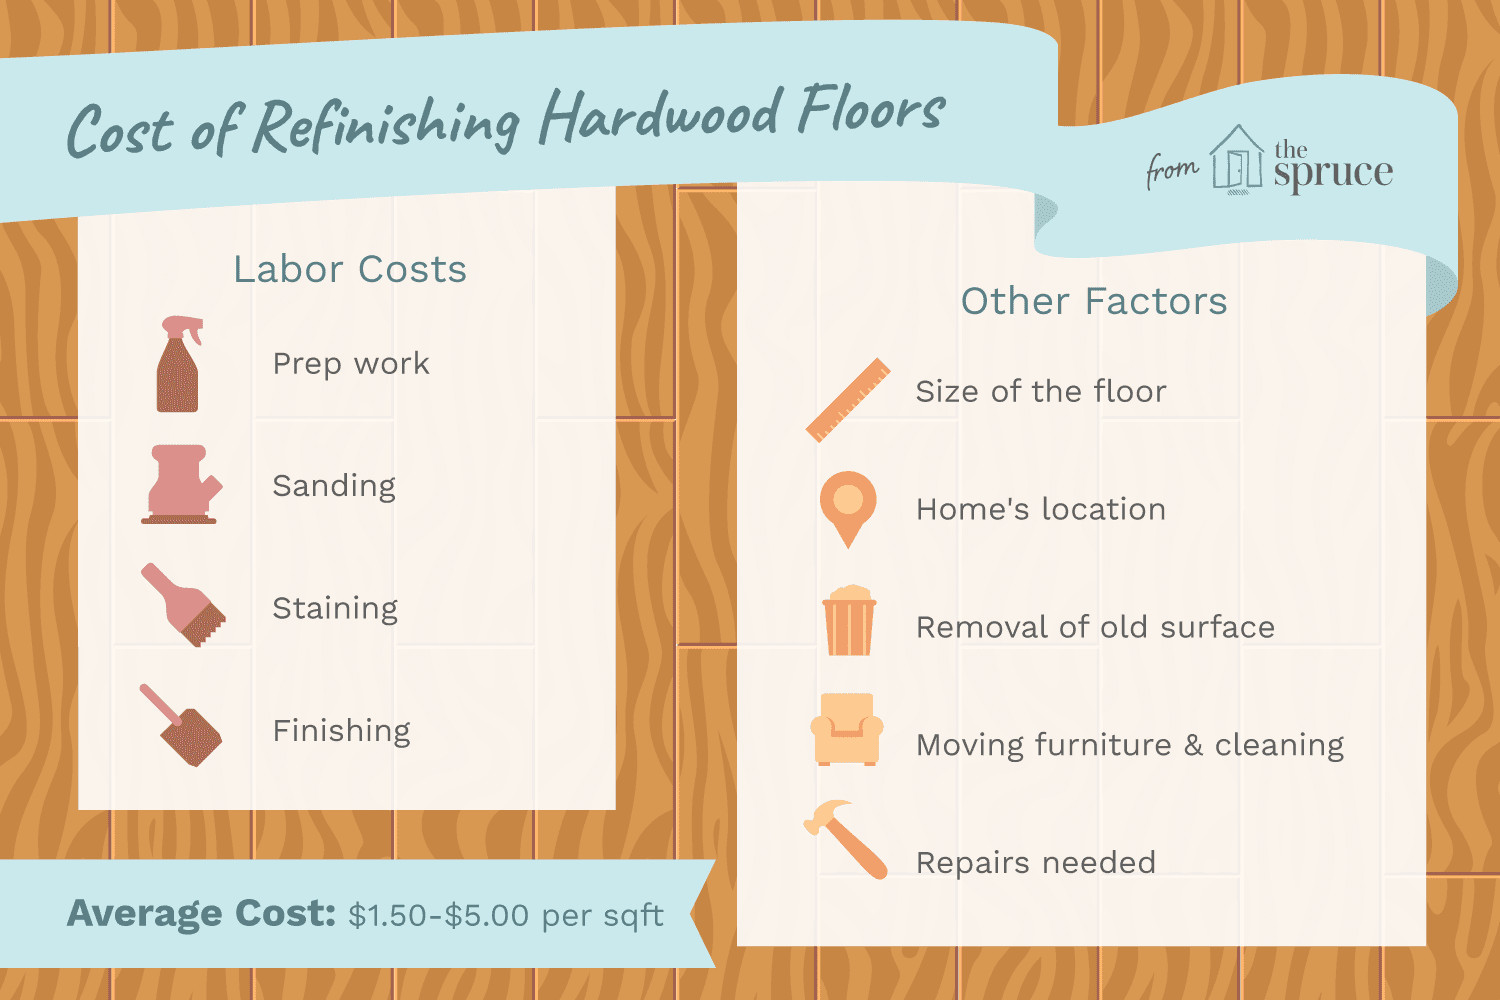 average cost of hardwood flooring installed canada of the cost to refinish hardwood floors in cost to refinish hardwood floors 1314853 final 5bb6259346e0fb0026825ce2